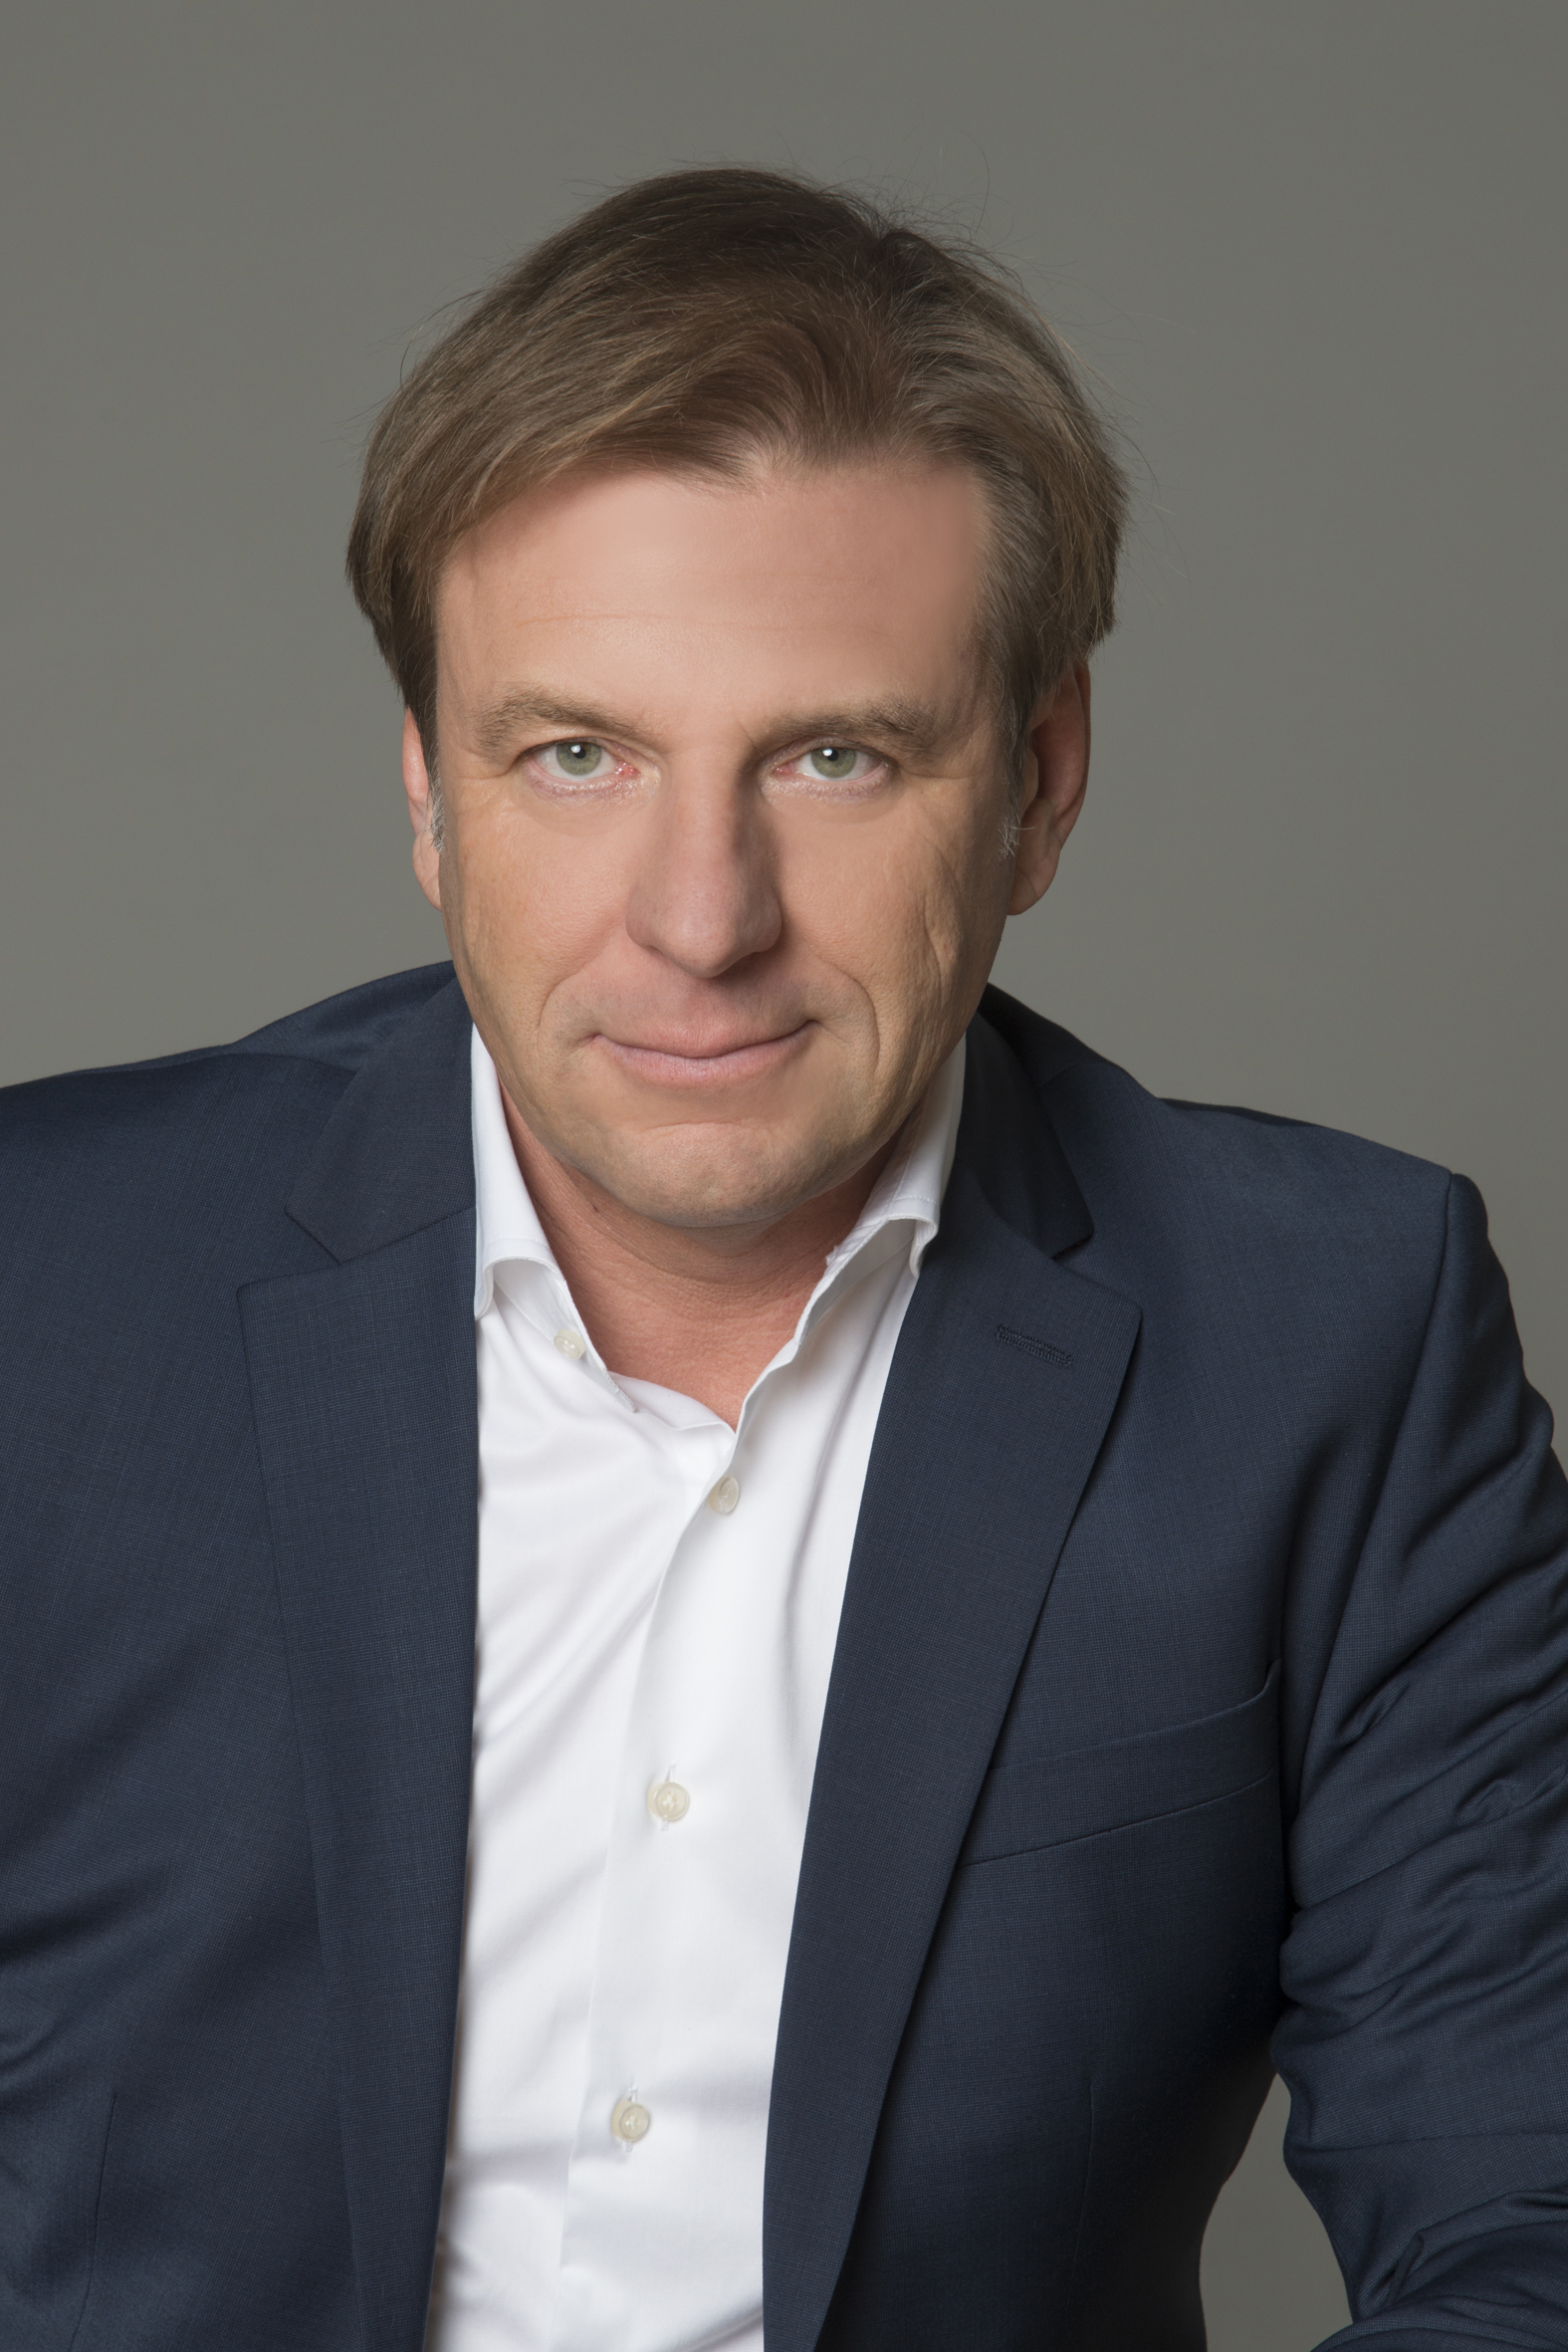 Michael Kretschmer, VP EMEA von Clearswift RUAG Cyber Security